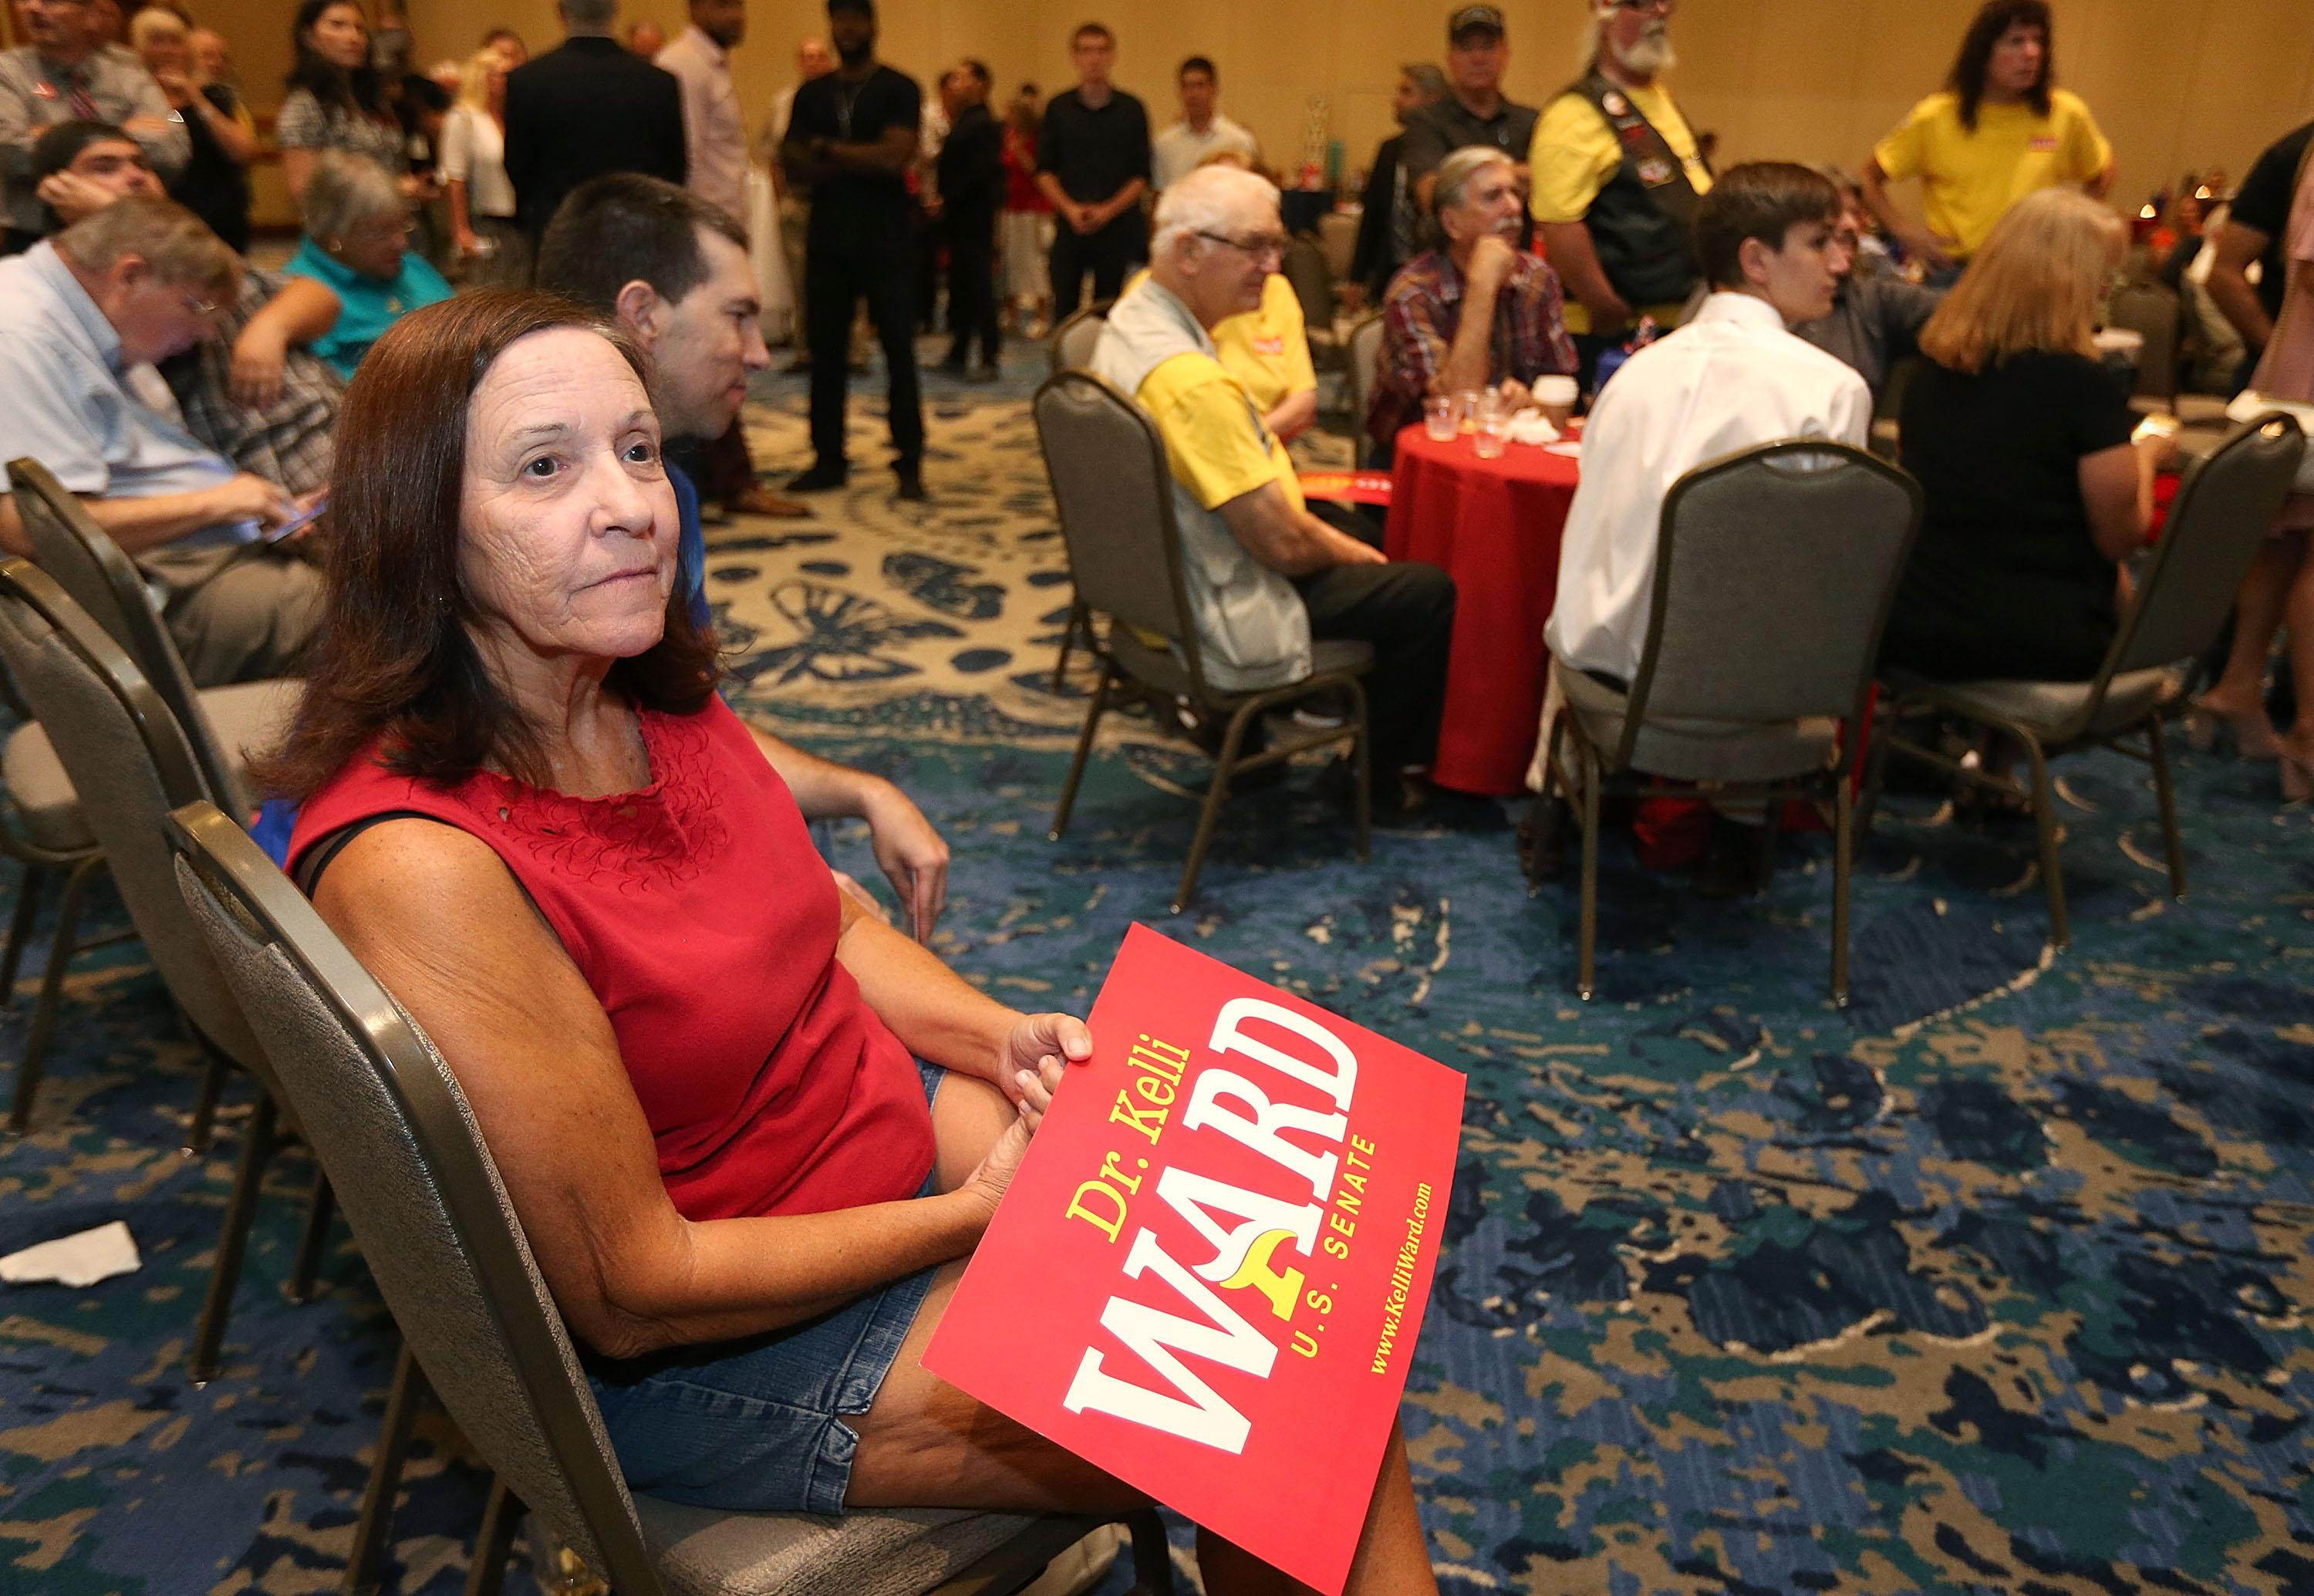 SCOTTSDALE, AZ - AUGUST 28:  A campaign supporter for Arizona GOP Senate candidate Kelli Ward watches results at an election night event in which Ward conceded the race on August 28, 2018 in Scottsdale, Arizona.  Former state Sen. Ward, U.S. Rep. Martha McSally and former Maricopa County Sheriff Joe Arpaio were vying to replace outgoing Sen. Jeff Flake (R-AZ).  (Photo by Ralph Freso/Getty Images)